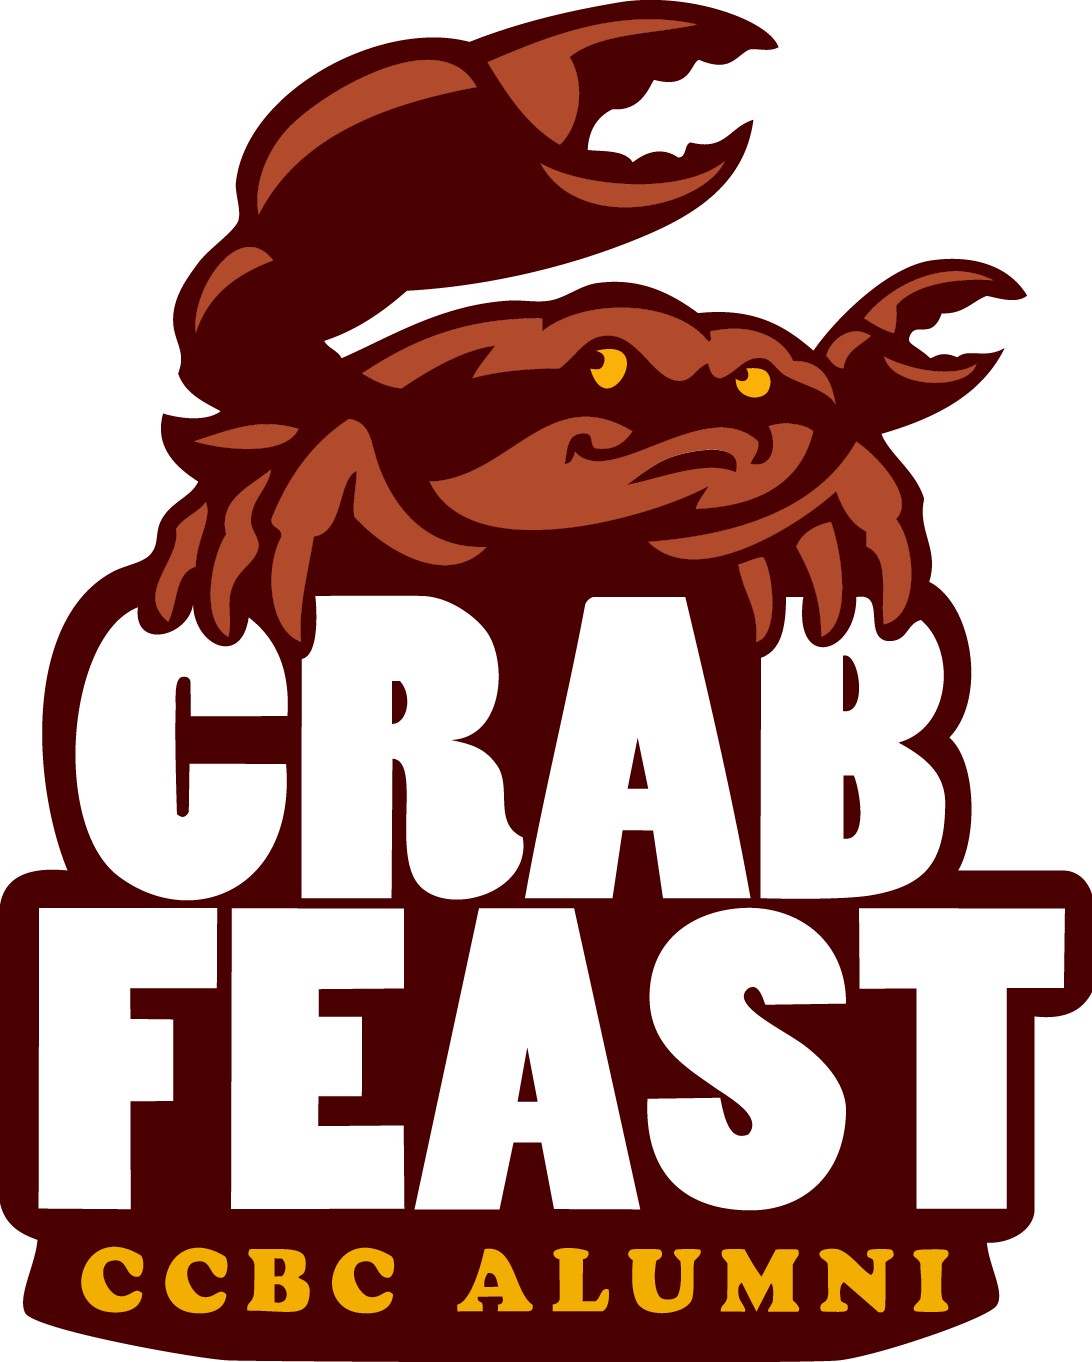 Crab vector design ccbc. Feast clipart family oriented